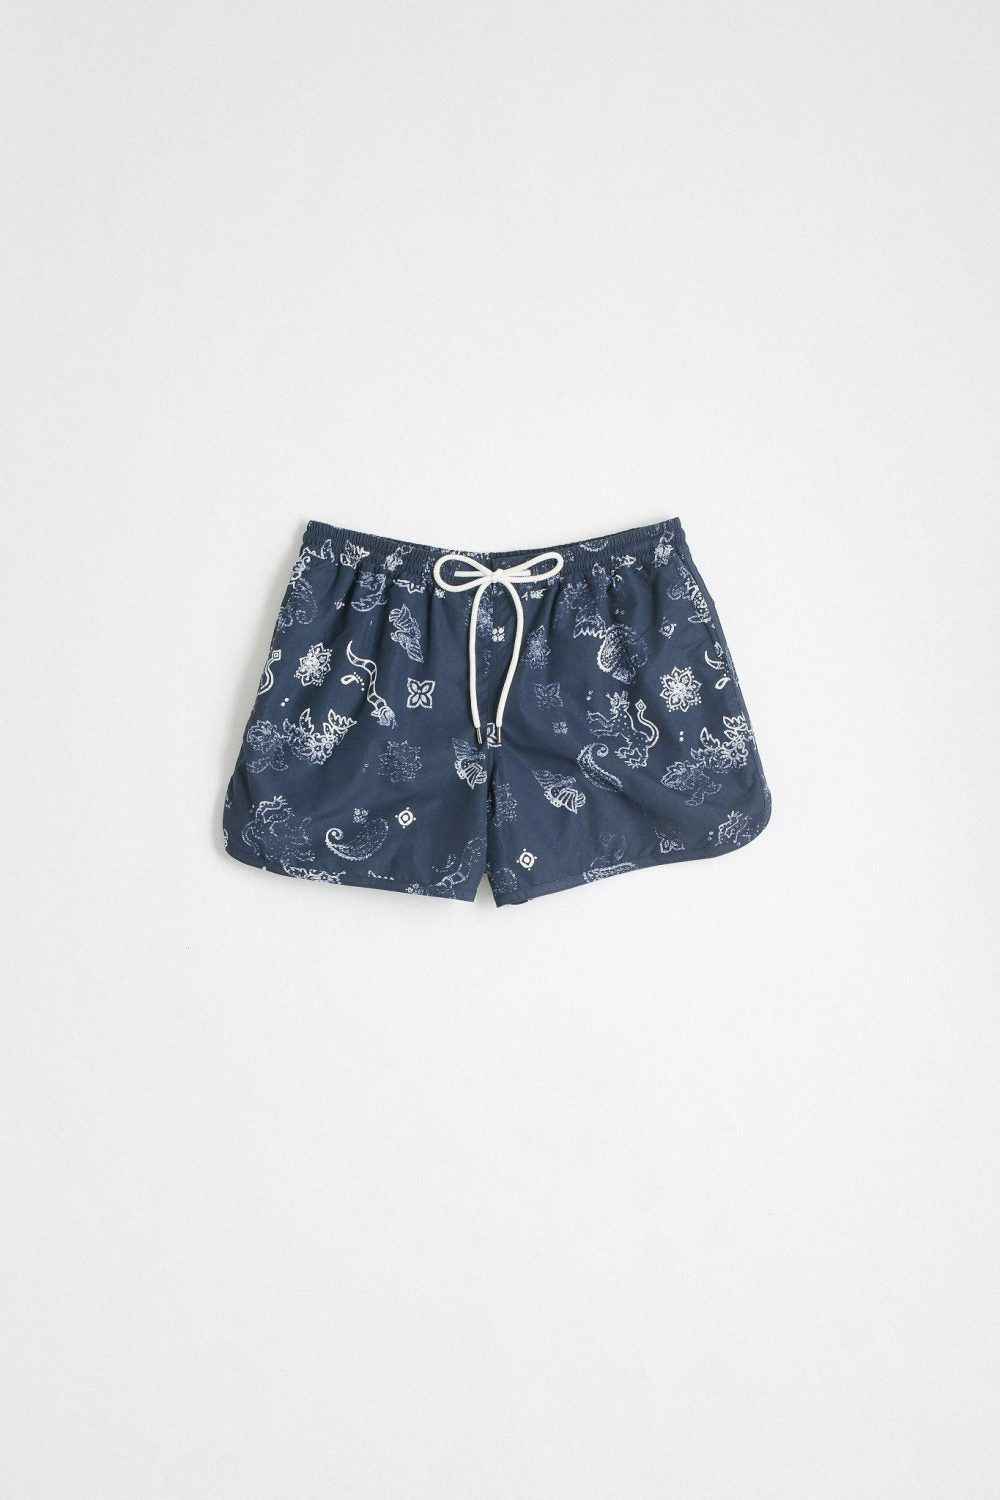 A Kind of Guise Gili Swimshorts, Paisley Bogota